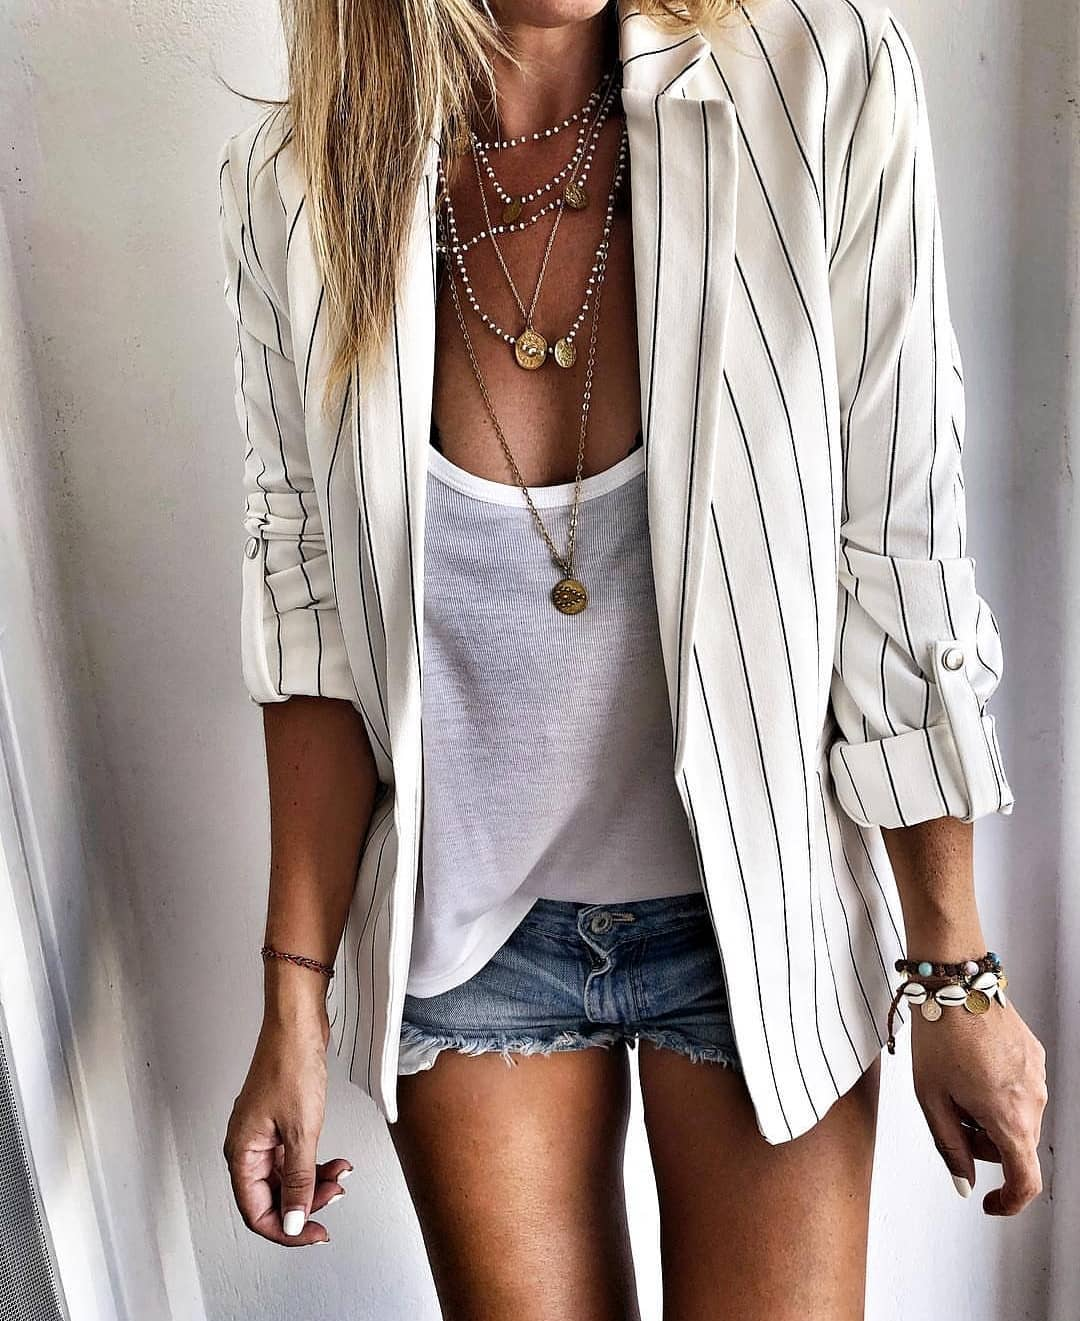 Pinstripe White Blazer And White Tee Teamed With Denim Cut Offs For Summer 2019